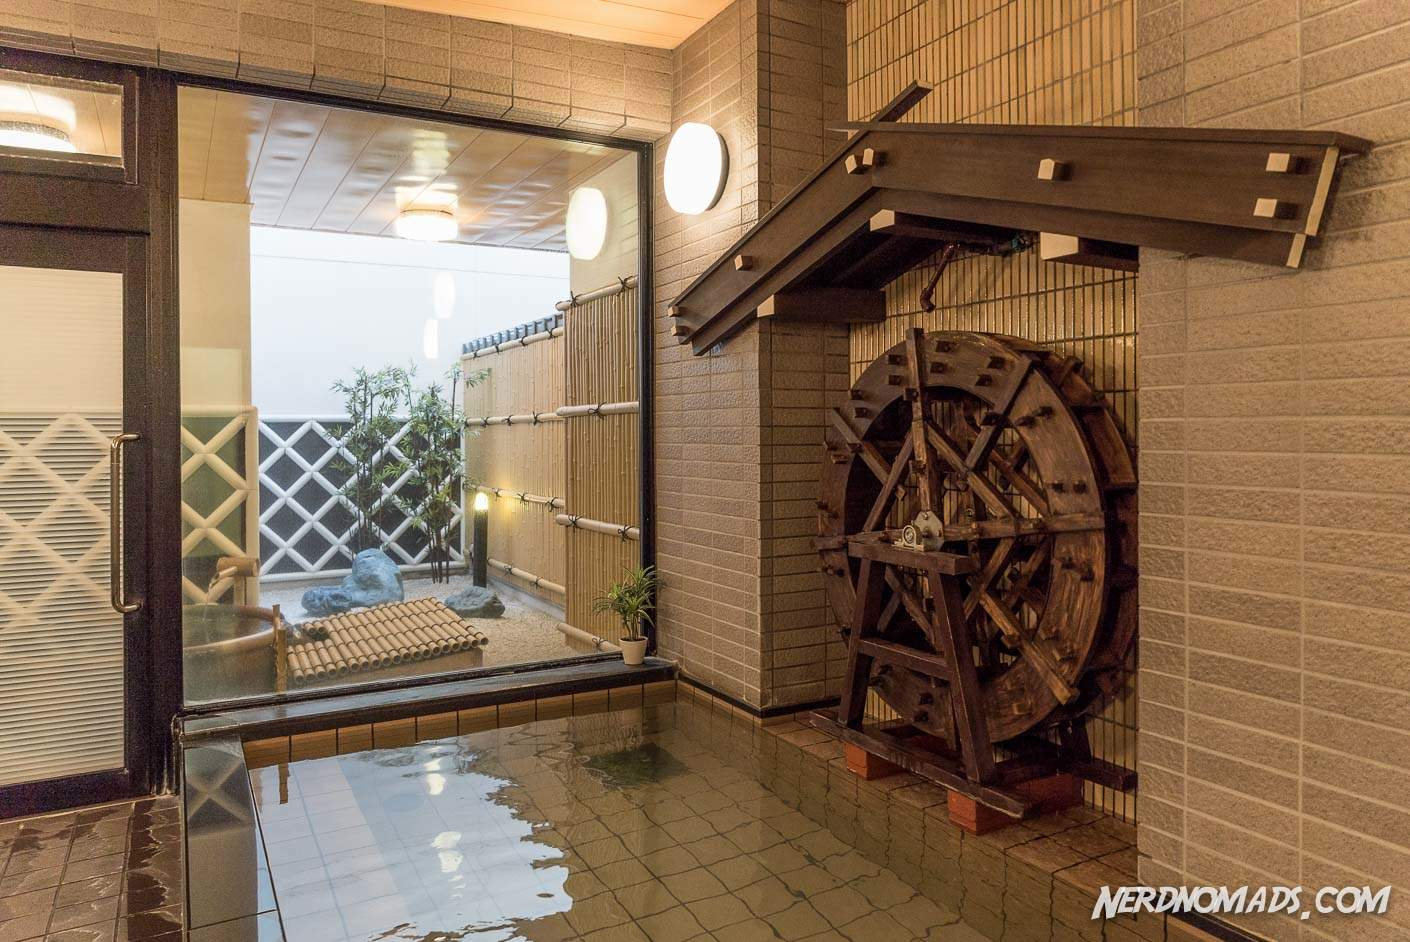 How To Take Onsen - 10 Steps To Japanese Hot Springs Bliss - Nerd Nomads